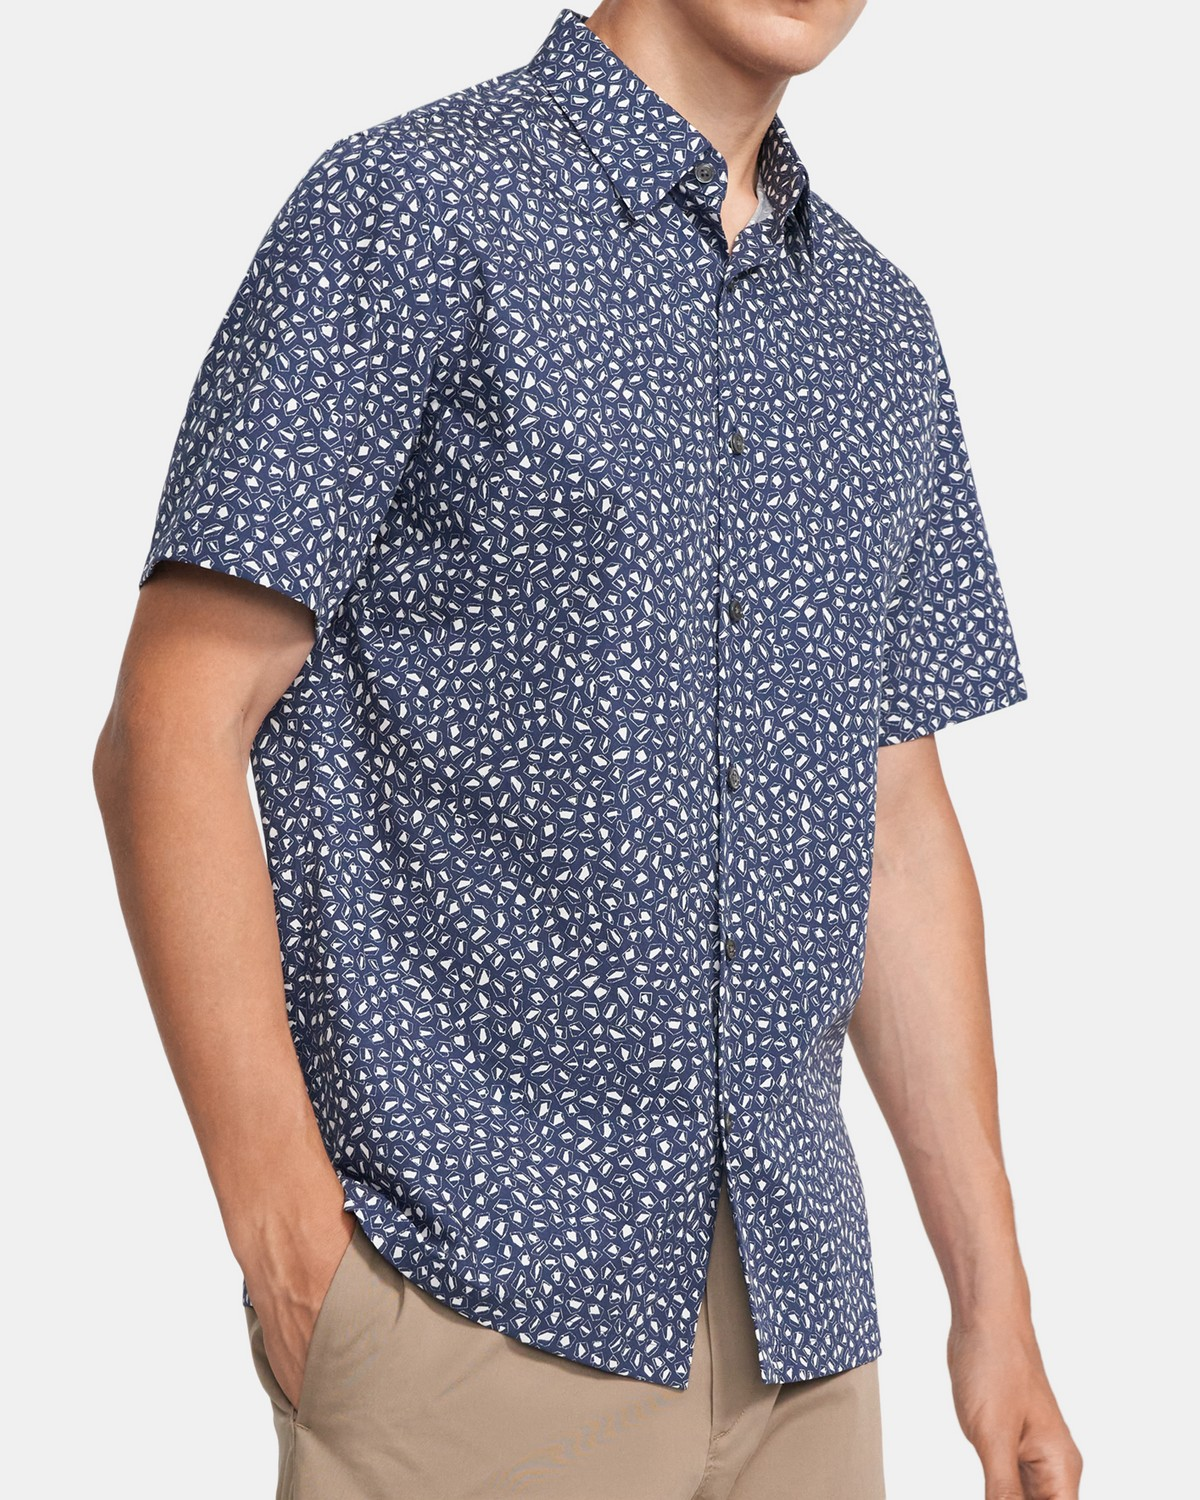 Standard-Fit Short-Sleeve Shirt In Stone Print